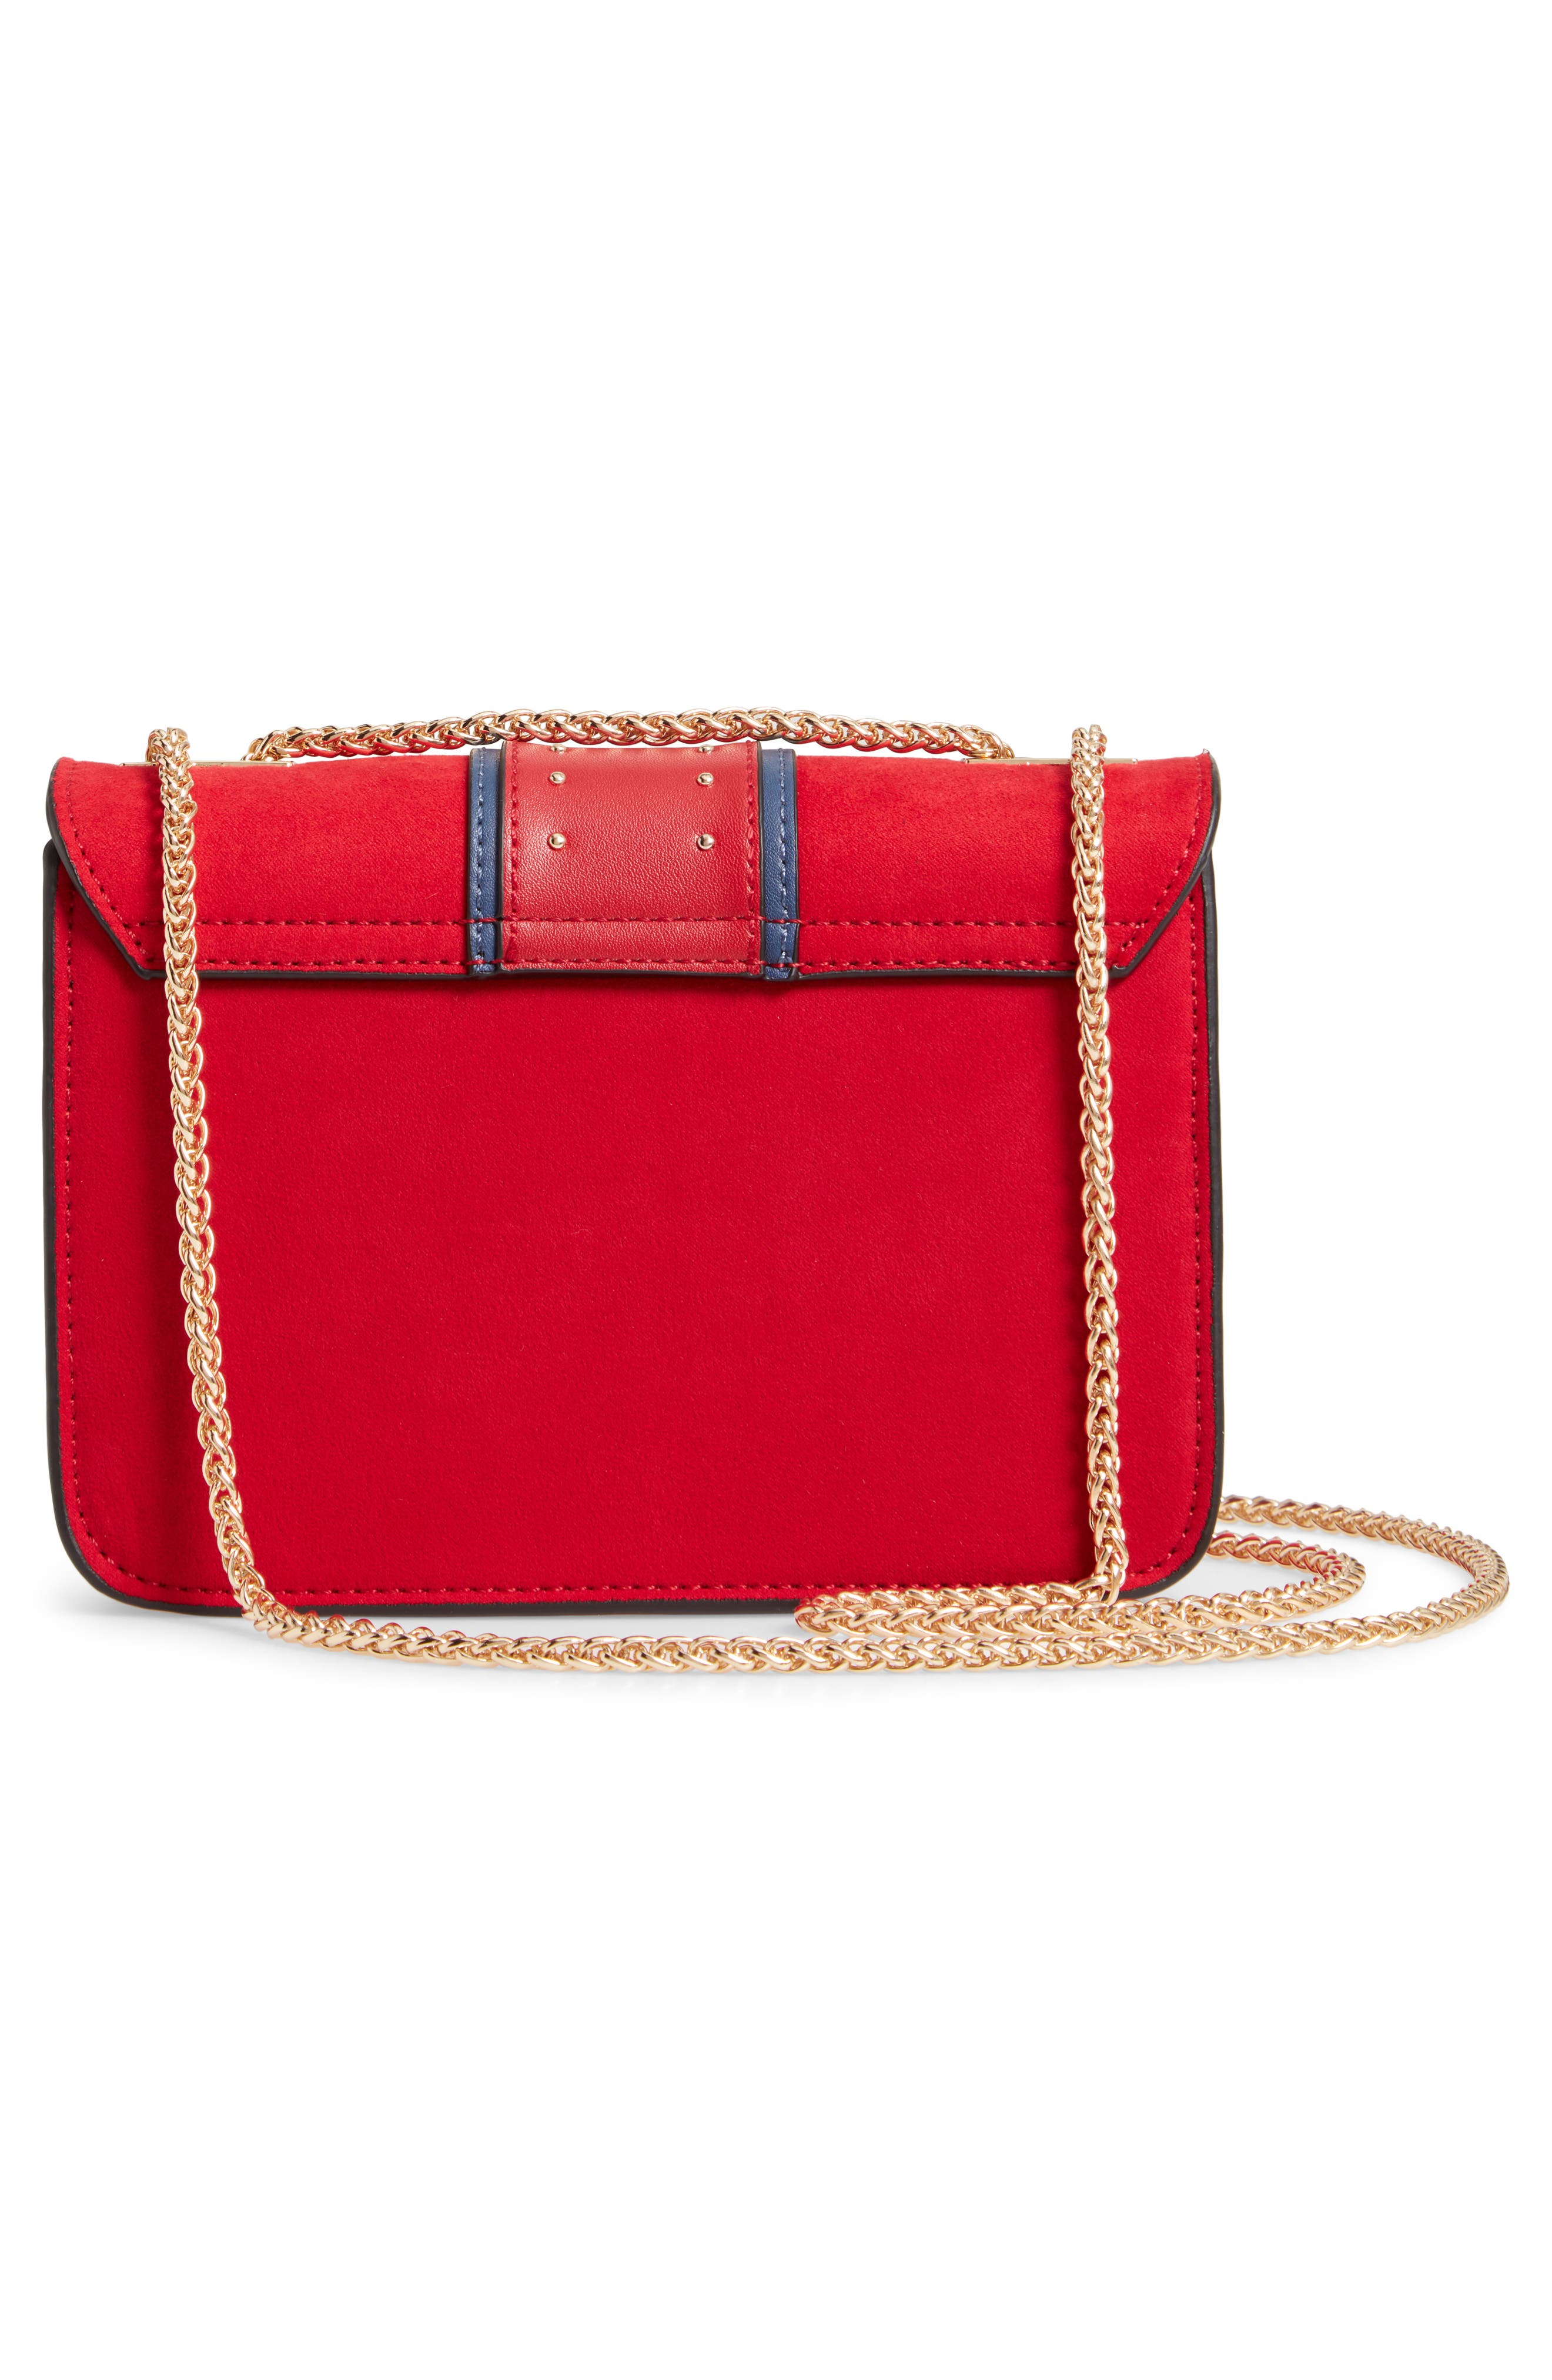 Panther Crossbody Bag,                             Alternate thumbnail 3, color,                             RED